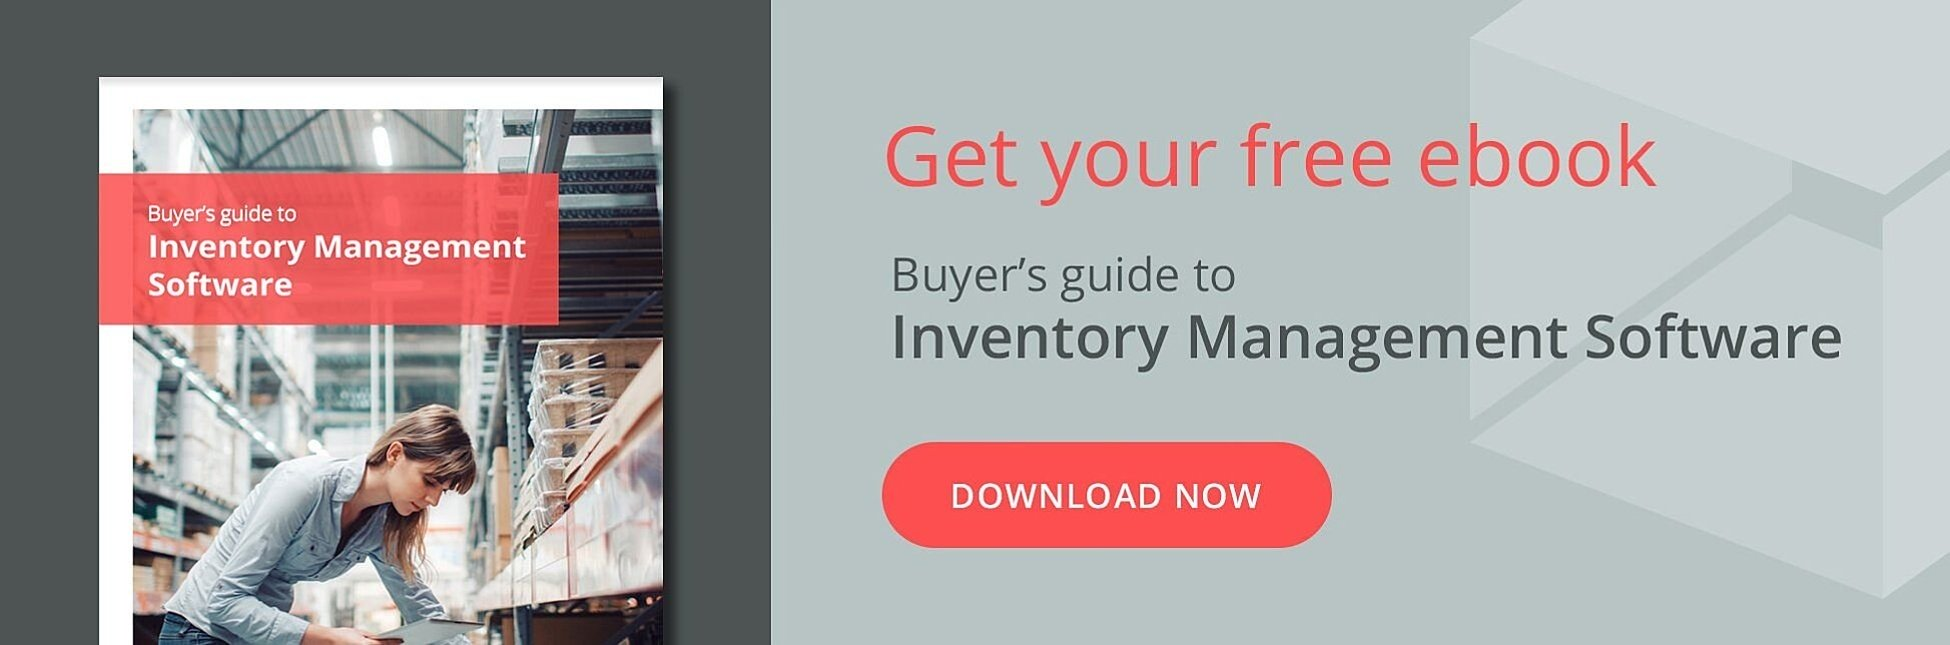 Unleashed Software - Free ebook download - Buyer's guide to Inventory Management Software